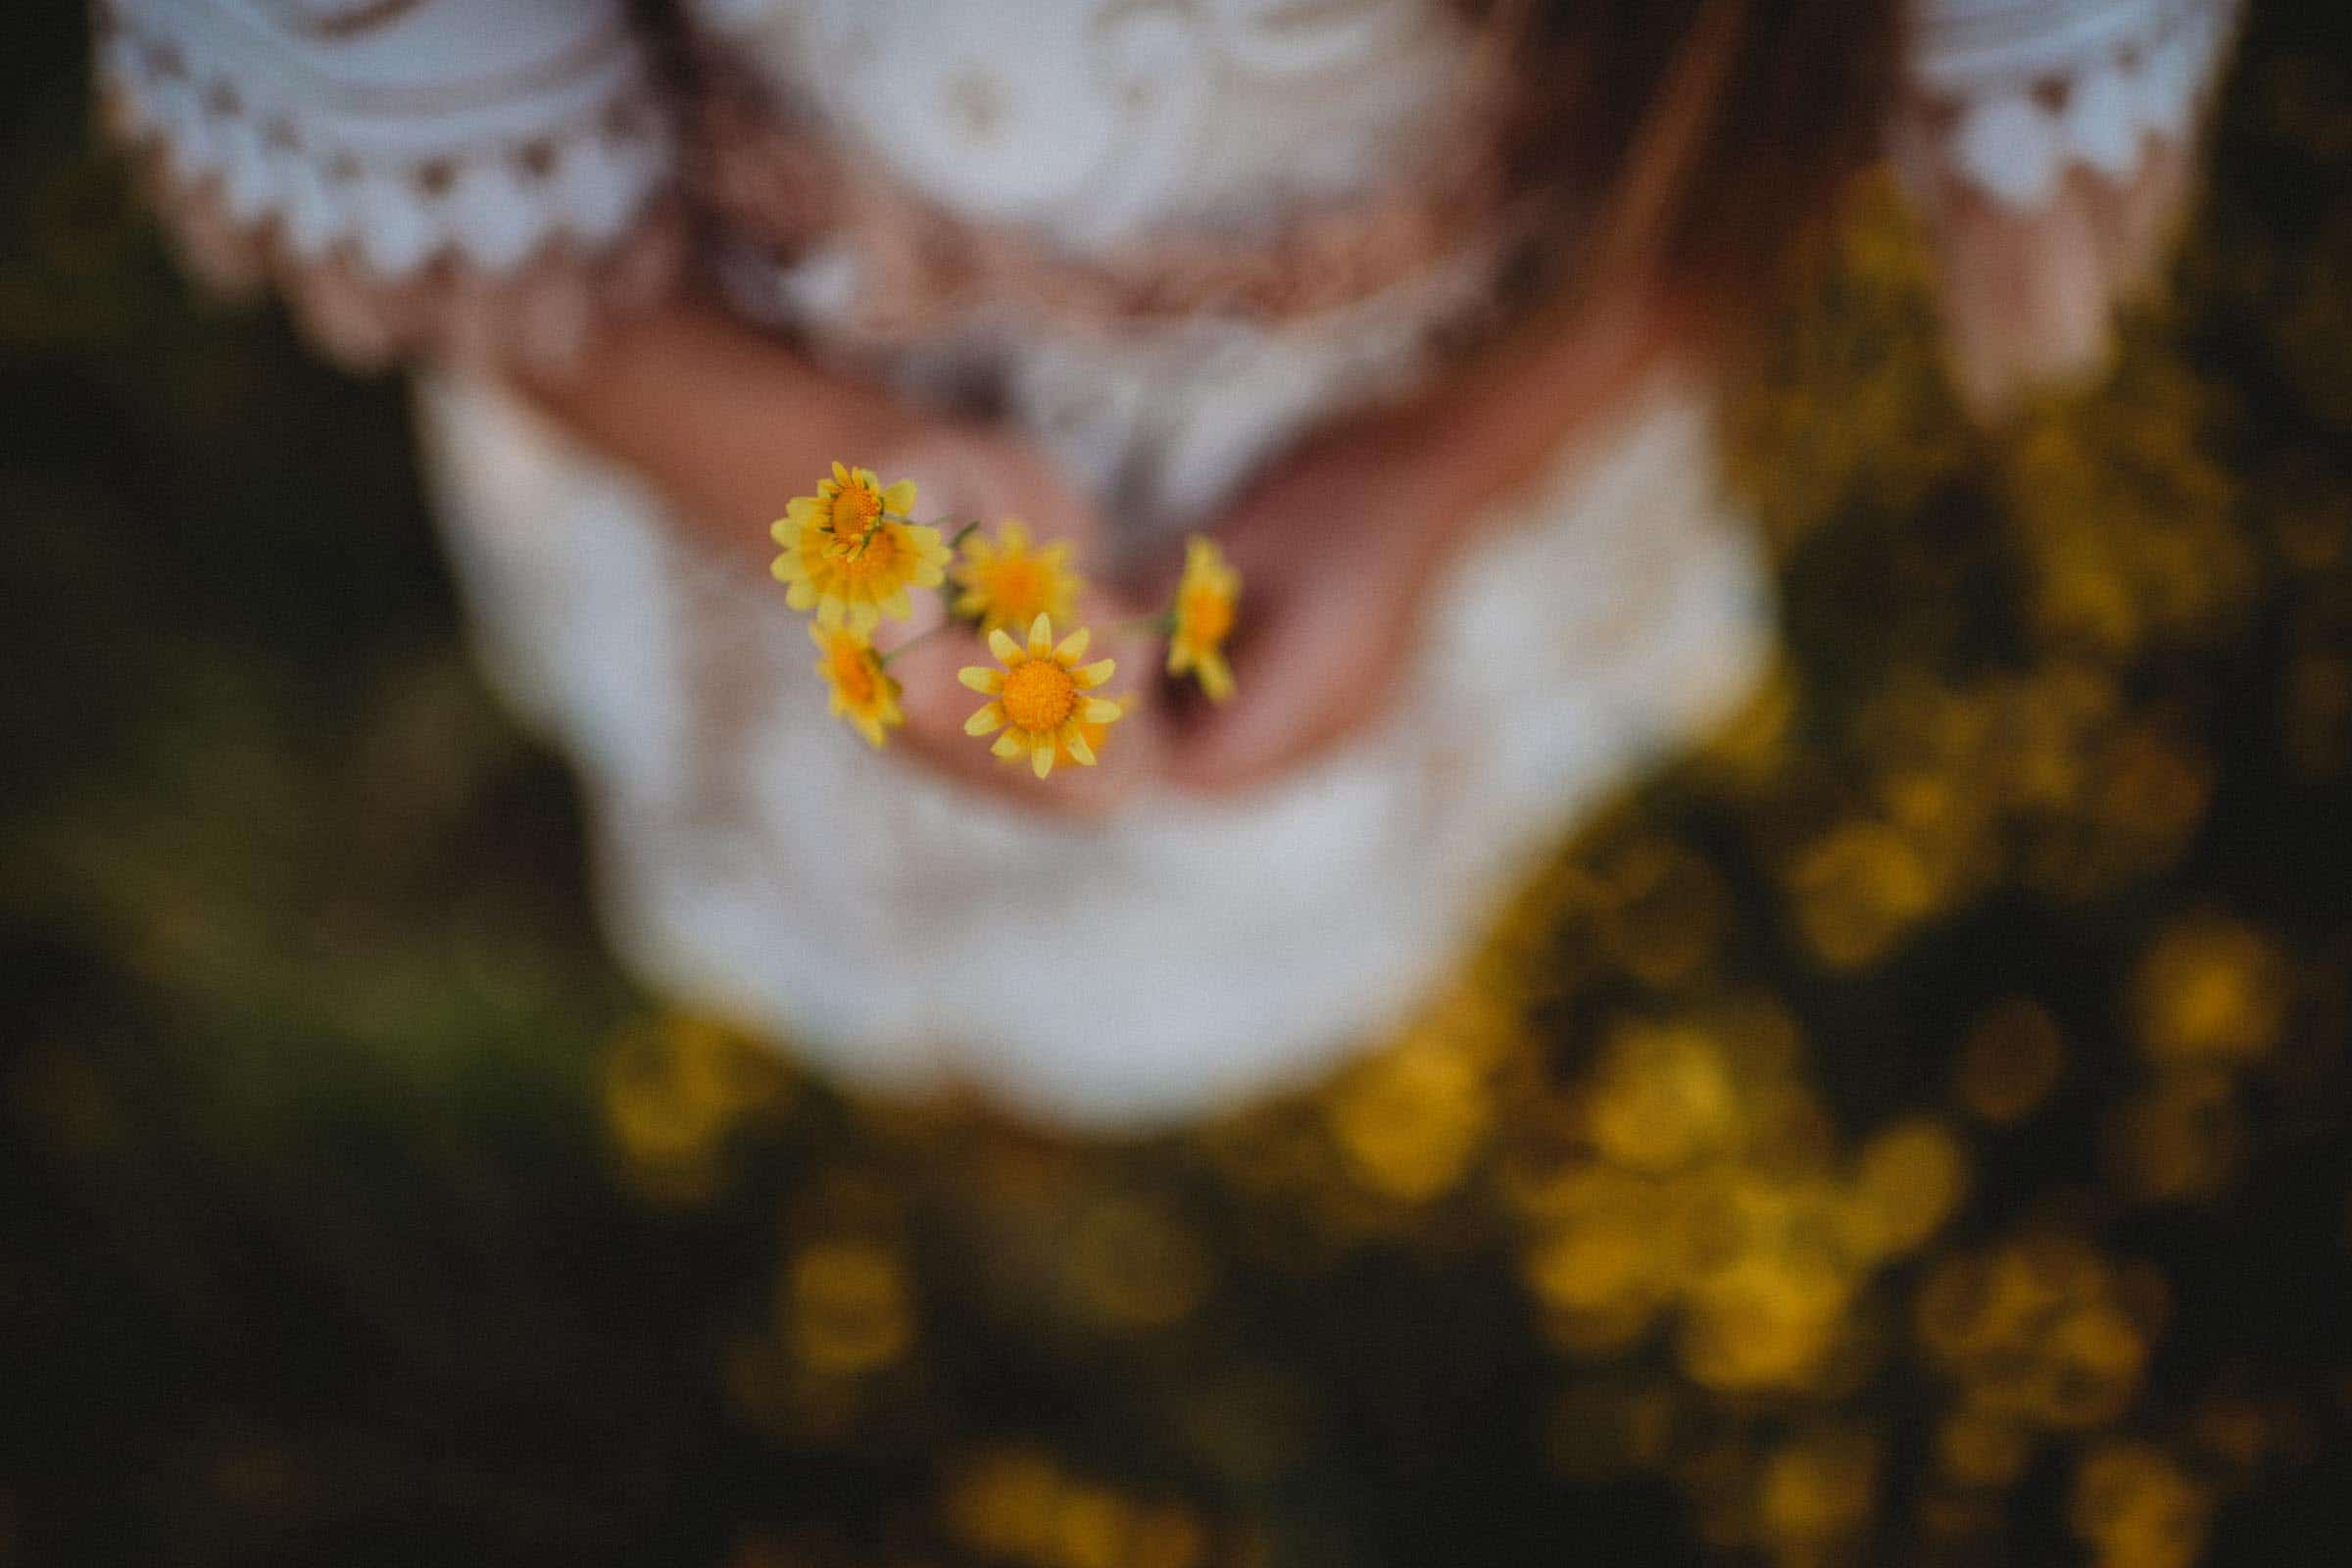 Close Up Little Girl Holding Yellow Flowers